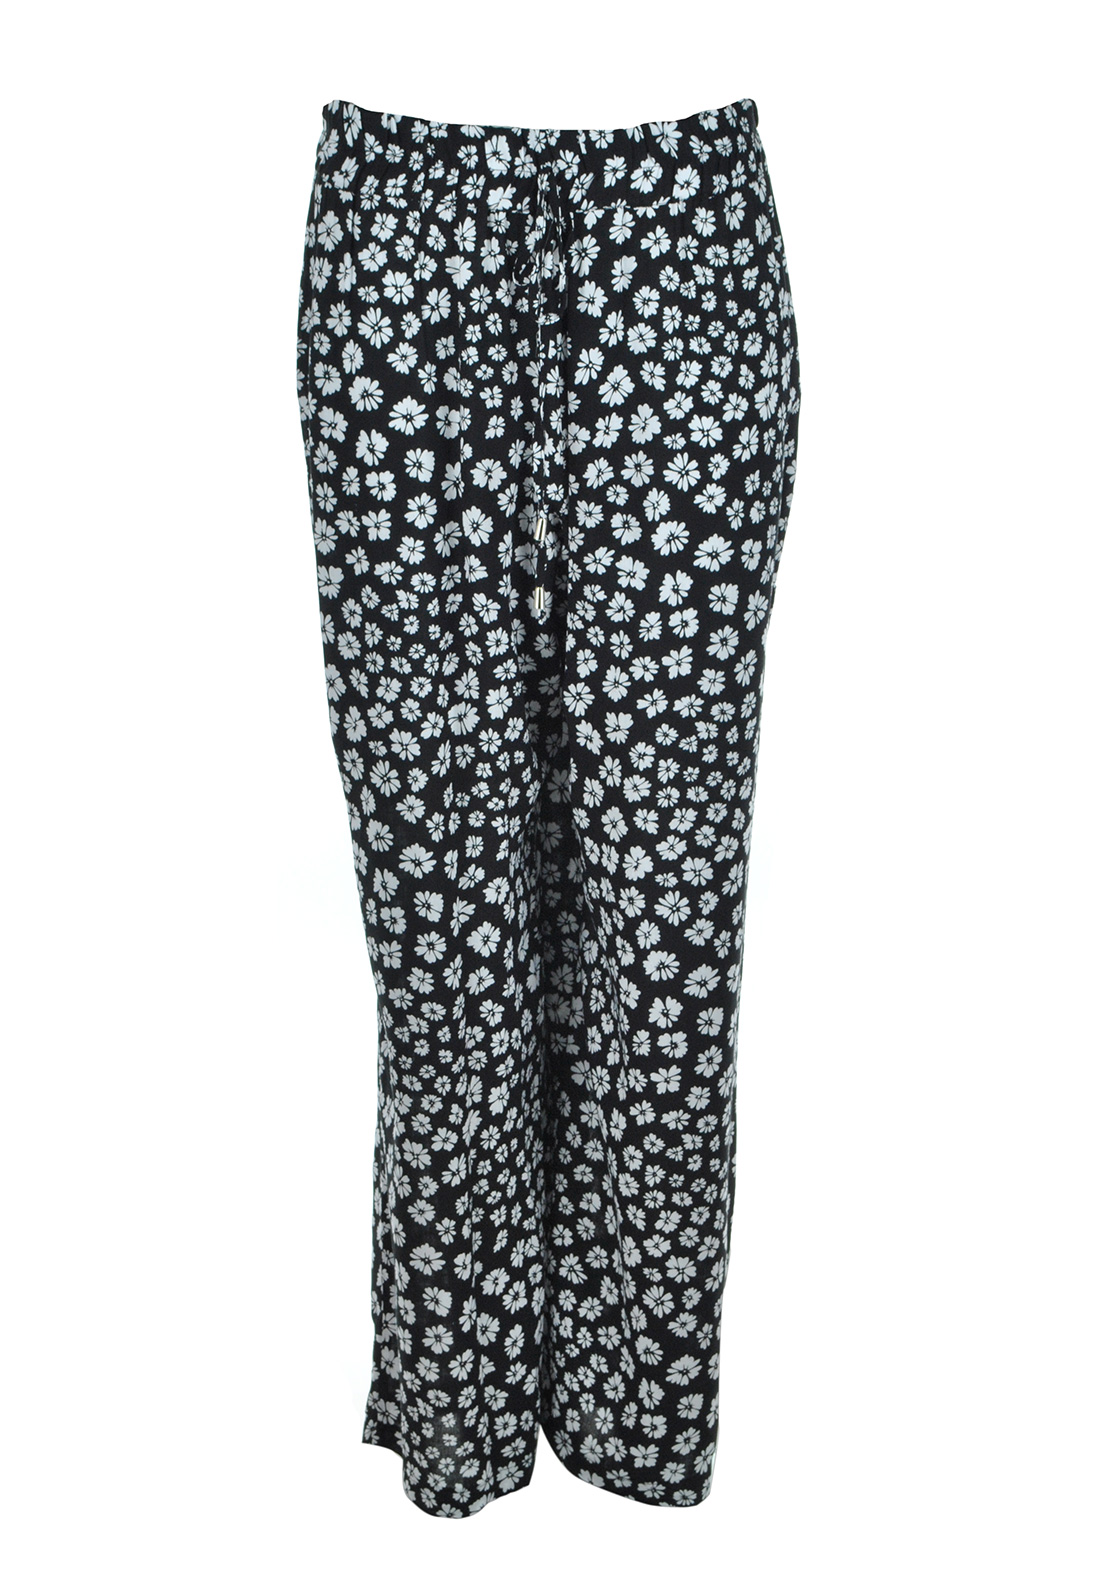 Lovedrobe Floral Print Wide Leg Trousers, Black and White